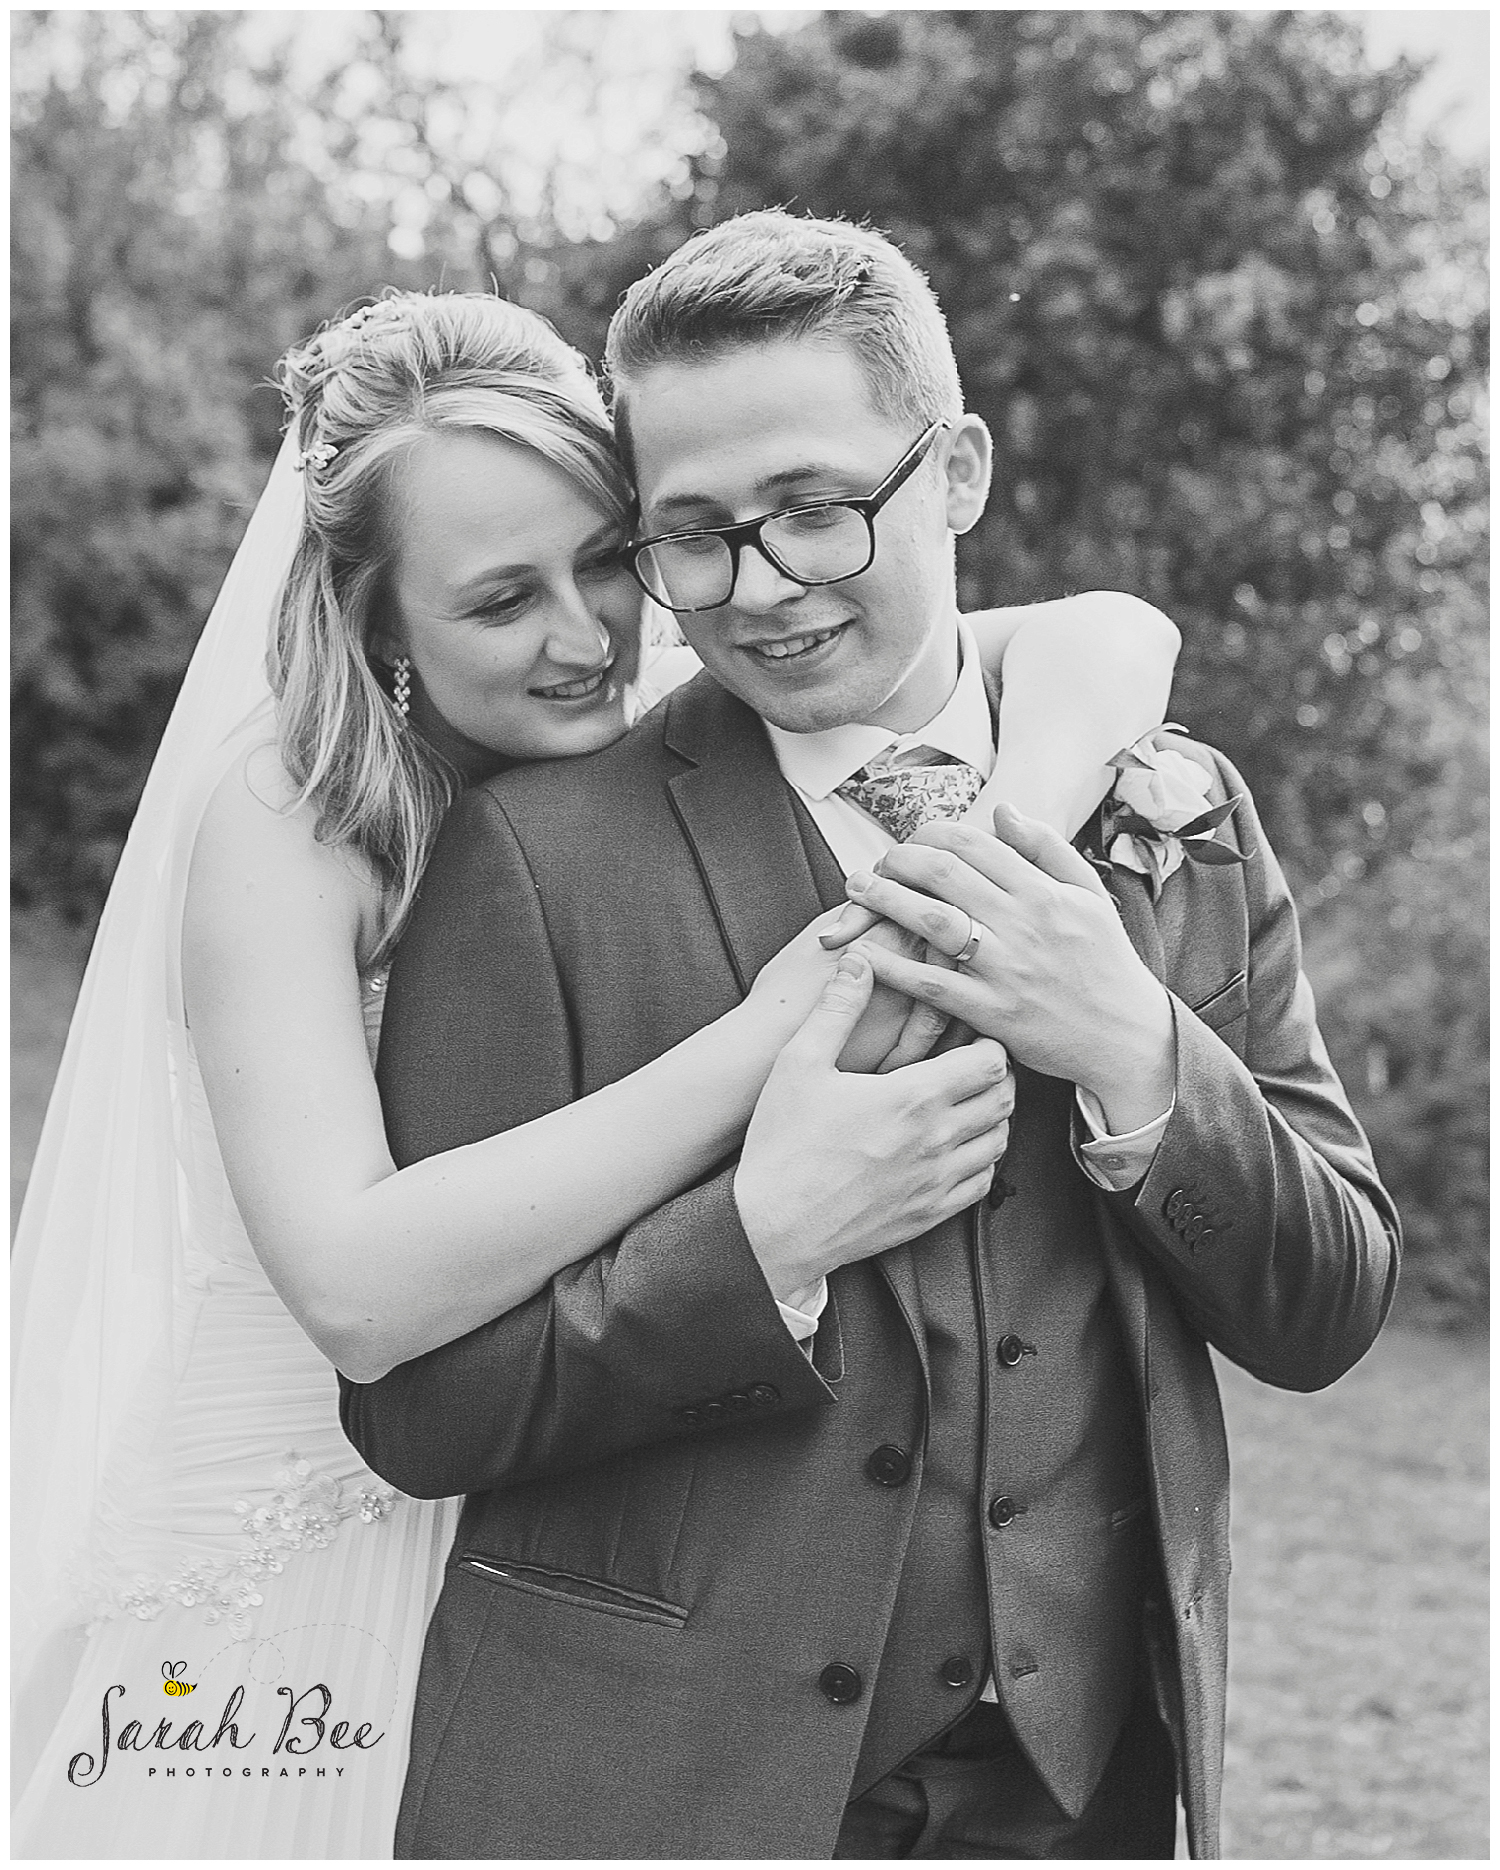 wedding photography with sarah bee photography, Peruga woodheys glossop, documentory photography wedding photographer_0206 copy.jpg